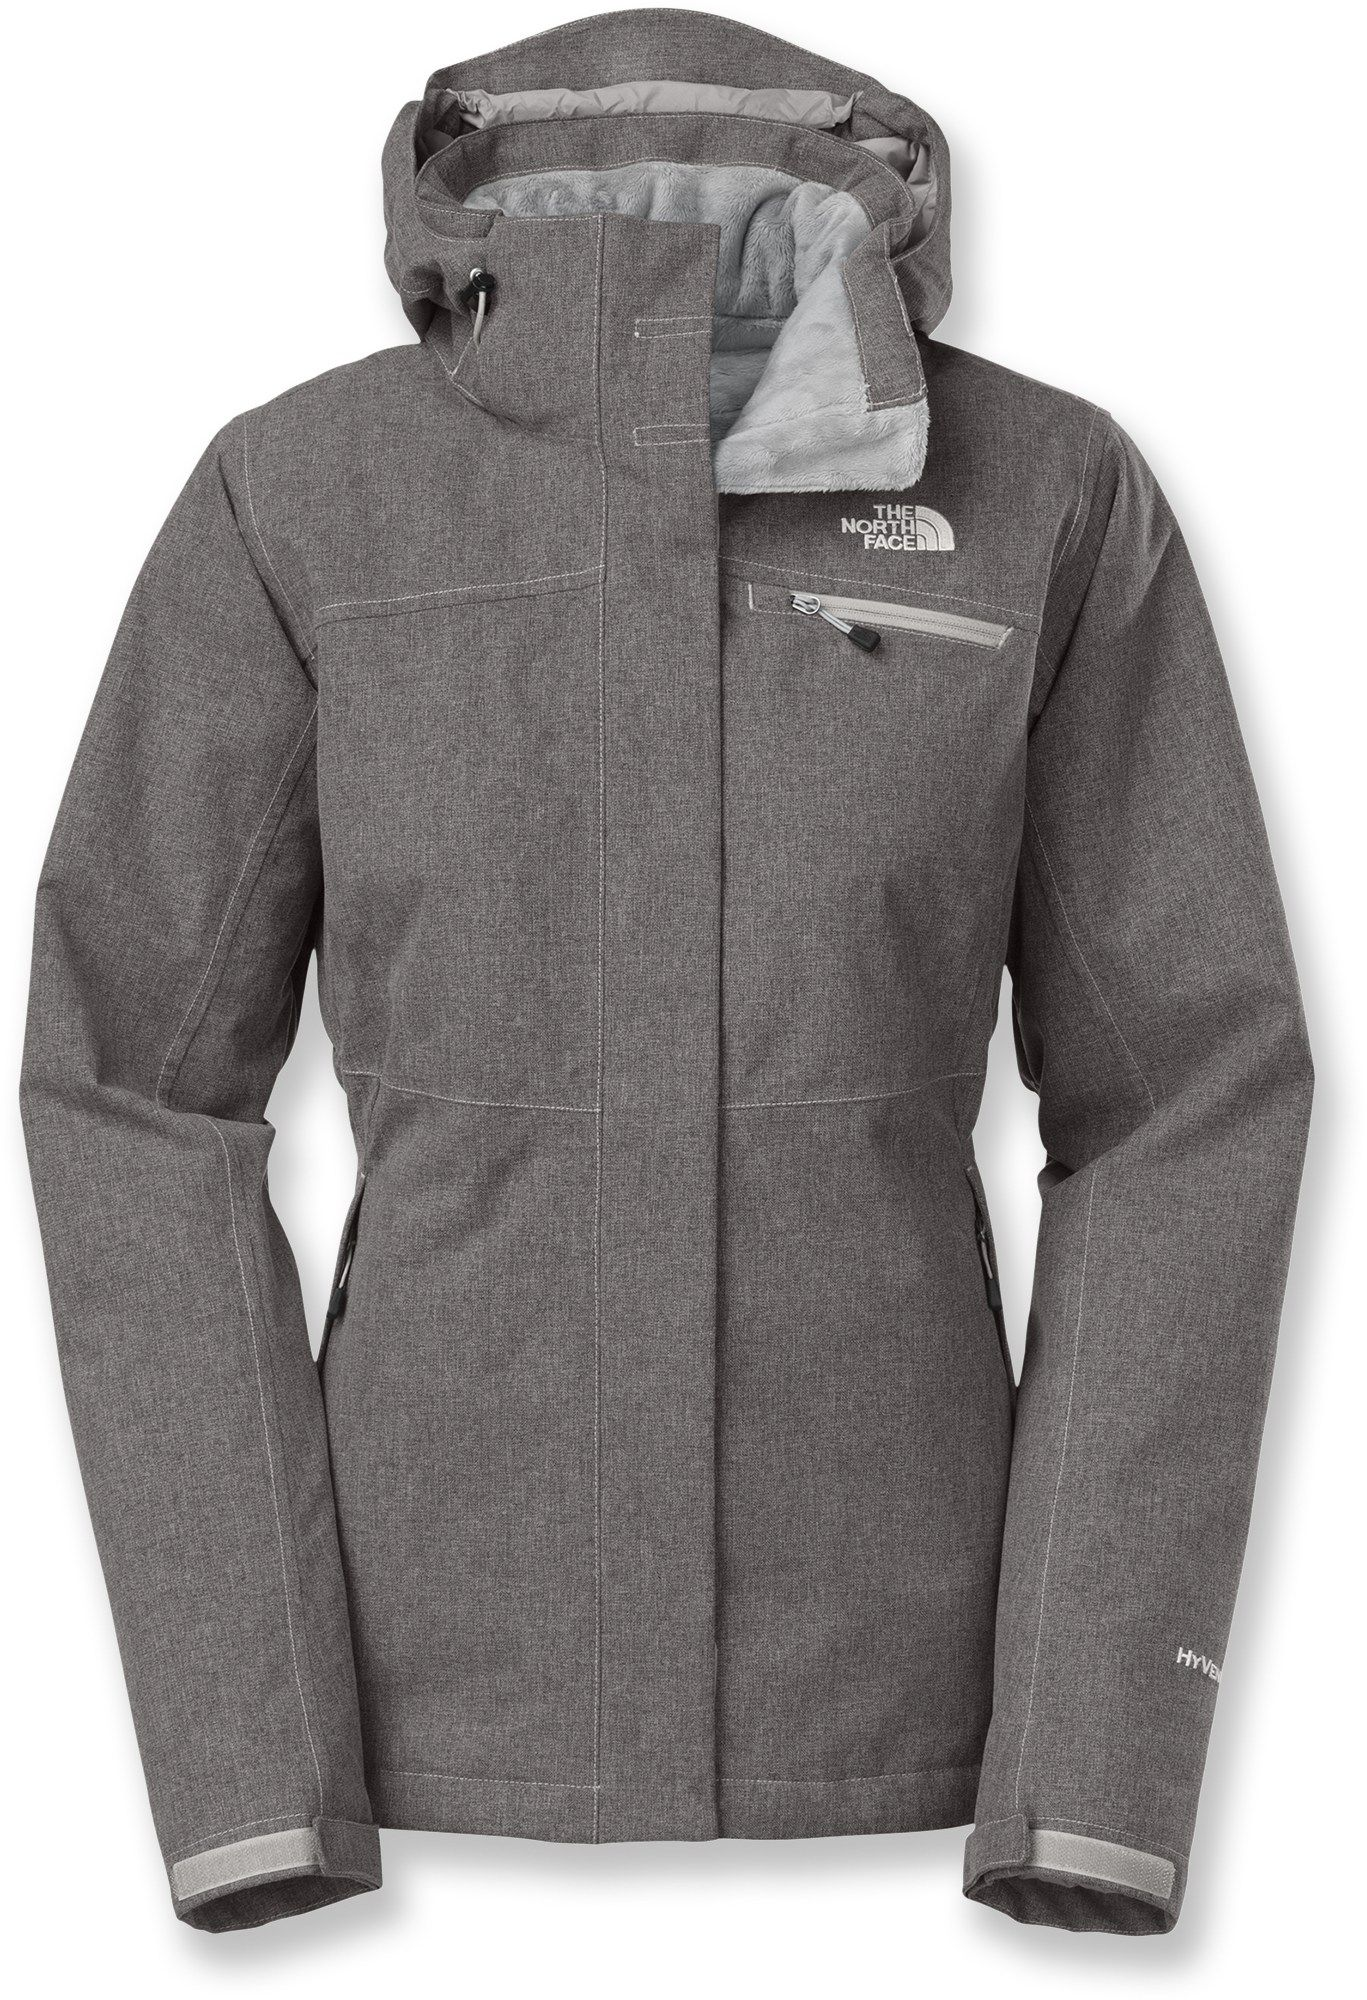 The North Face Lynndale Insulated Jacket Women S Rei Co Op Insulated Jacket Women North Face Jacket Womens Winter Jacket North Face [ 2000 x 1367 Pixel ]